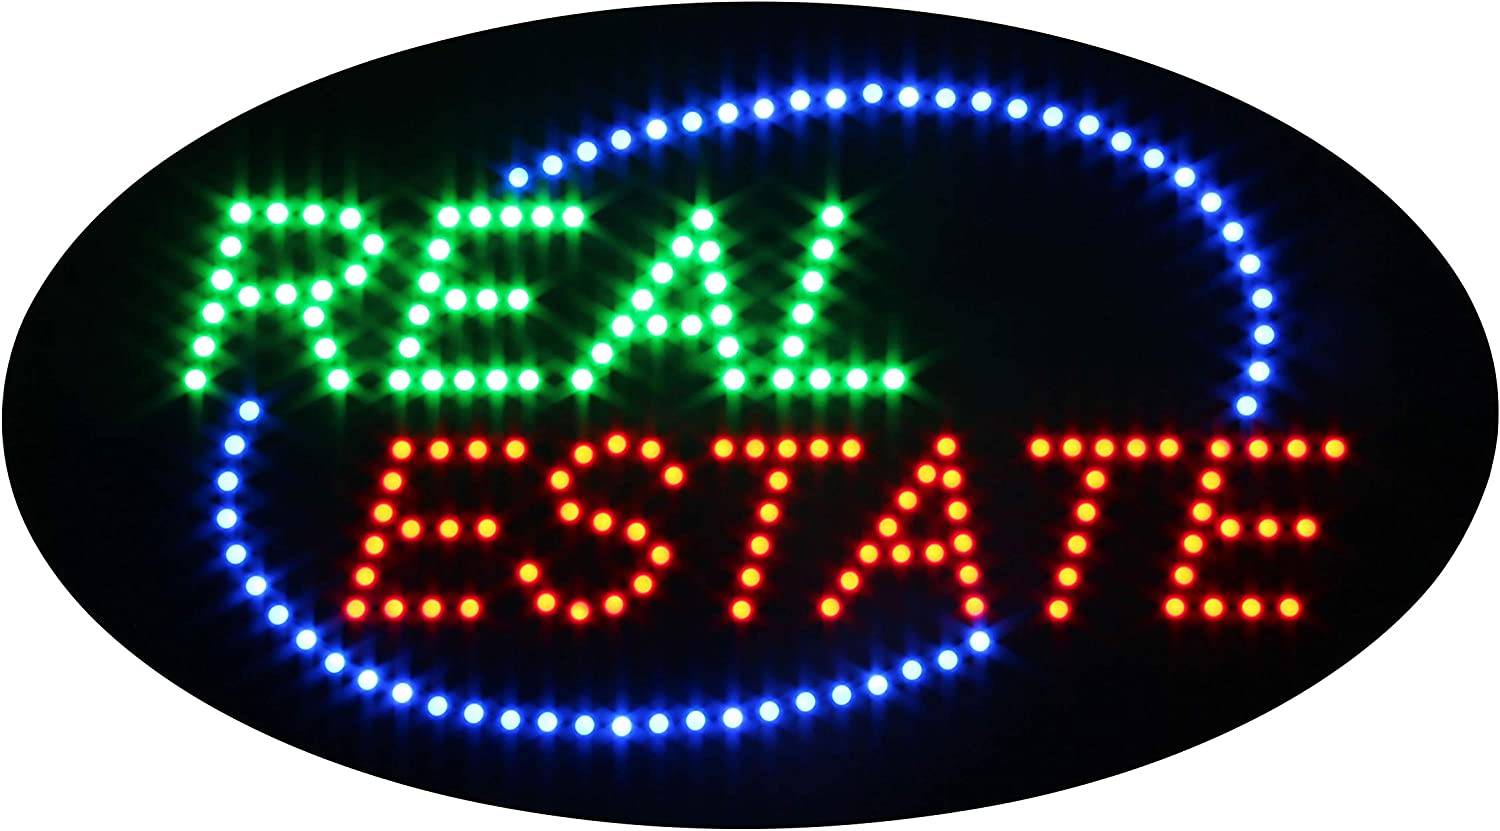 Super Bright Electric Advertising Display Board for Broker Realtor Properties Business Shop Store Window Home Bedroom Decor HSO1407 Real Estate Open Sign for Business